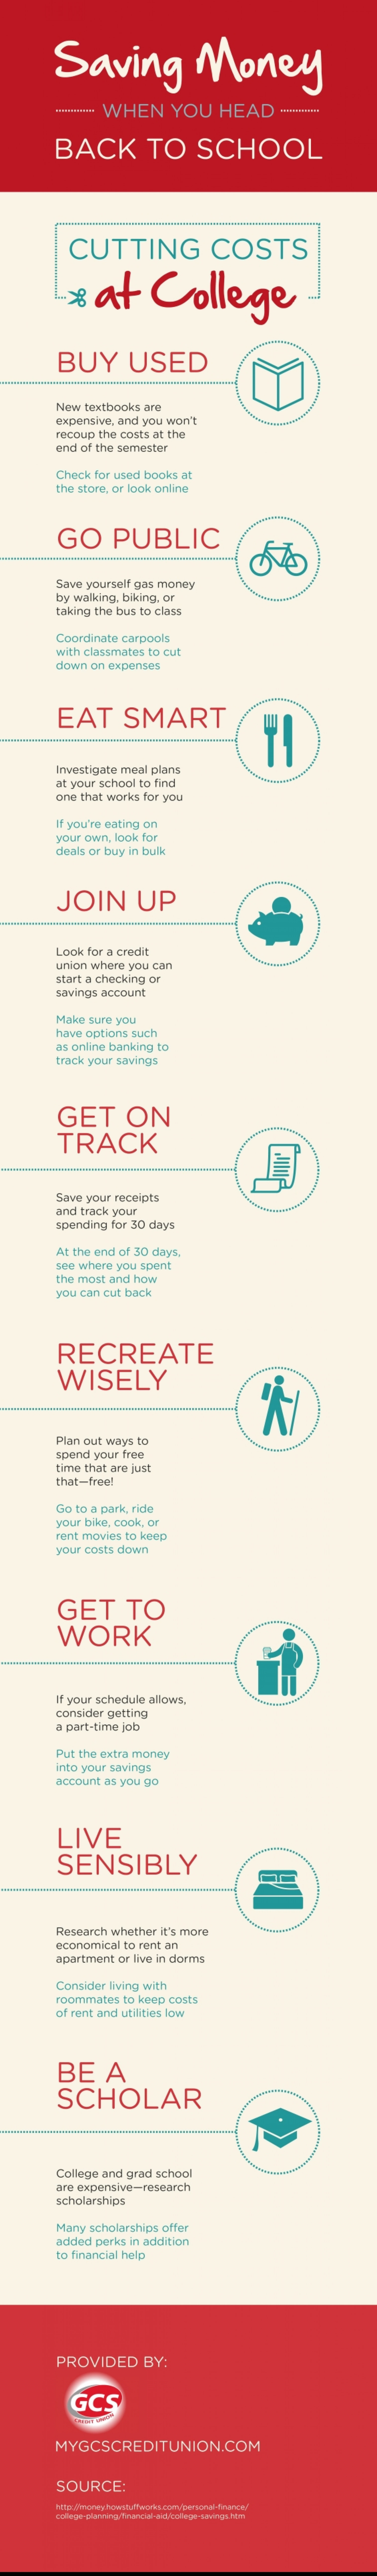 Saving Money While You Head Back to School Infographic